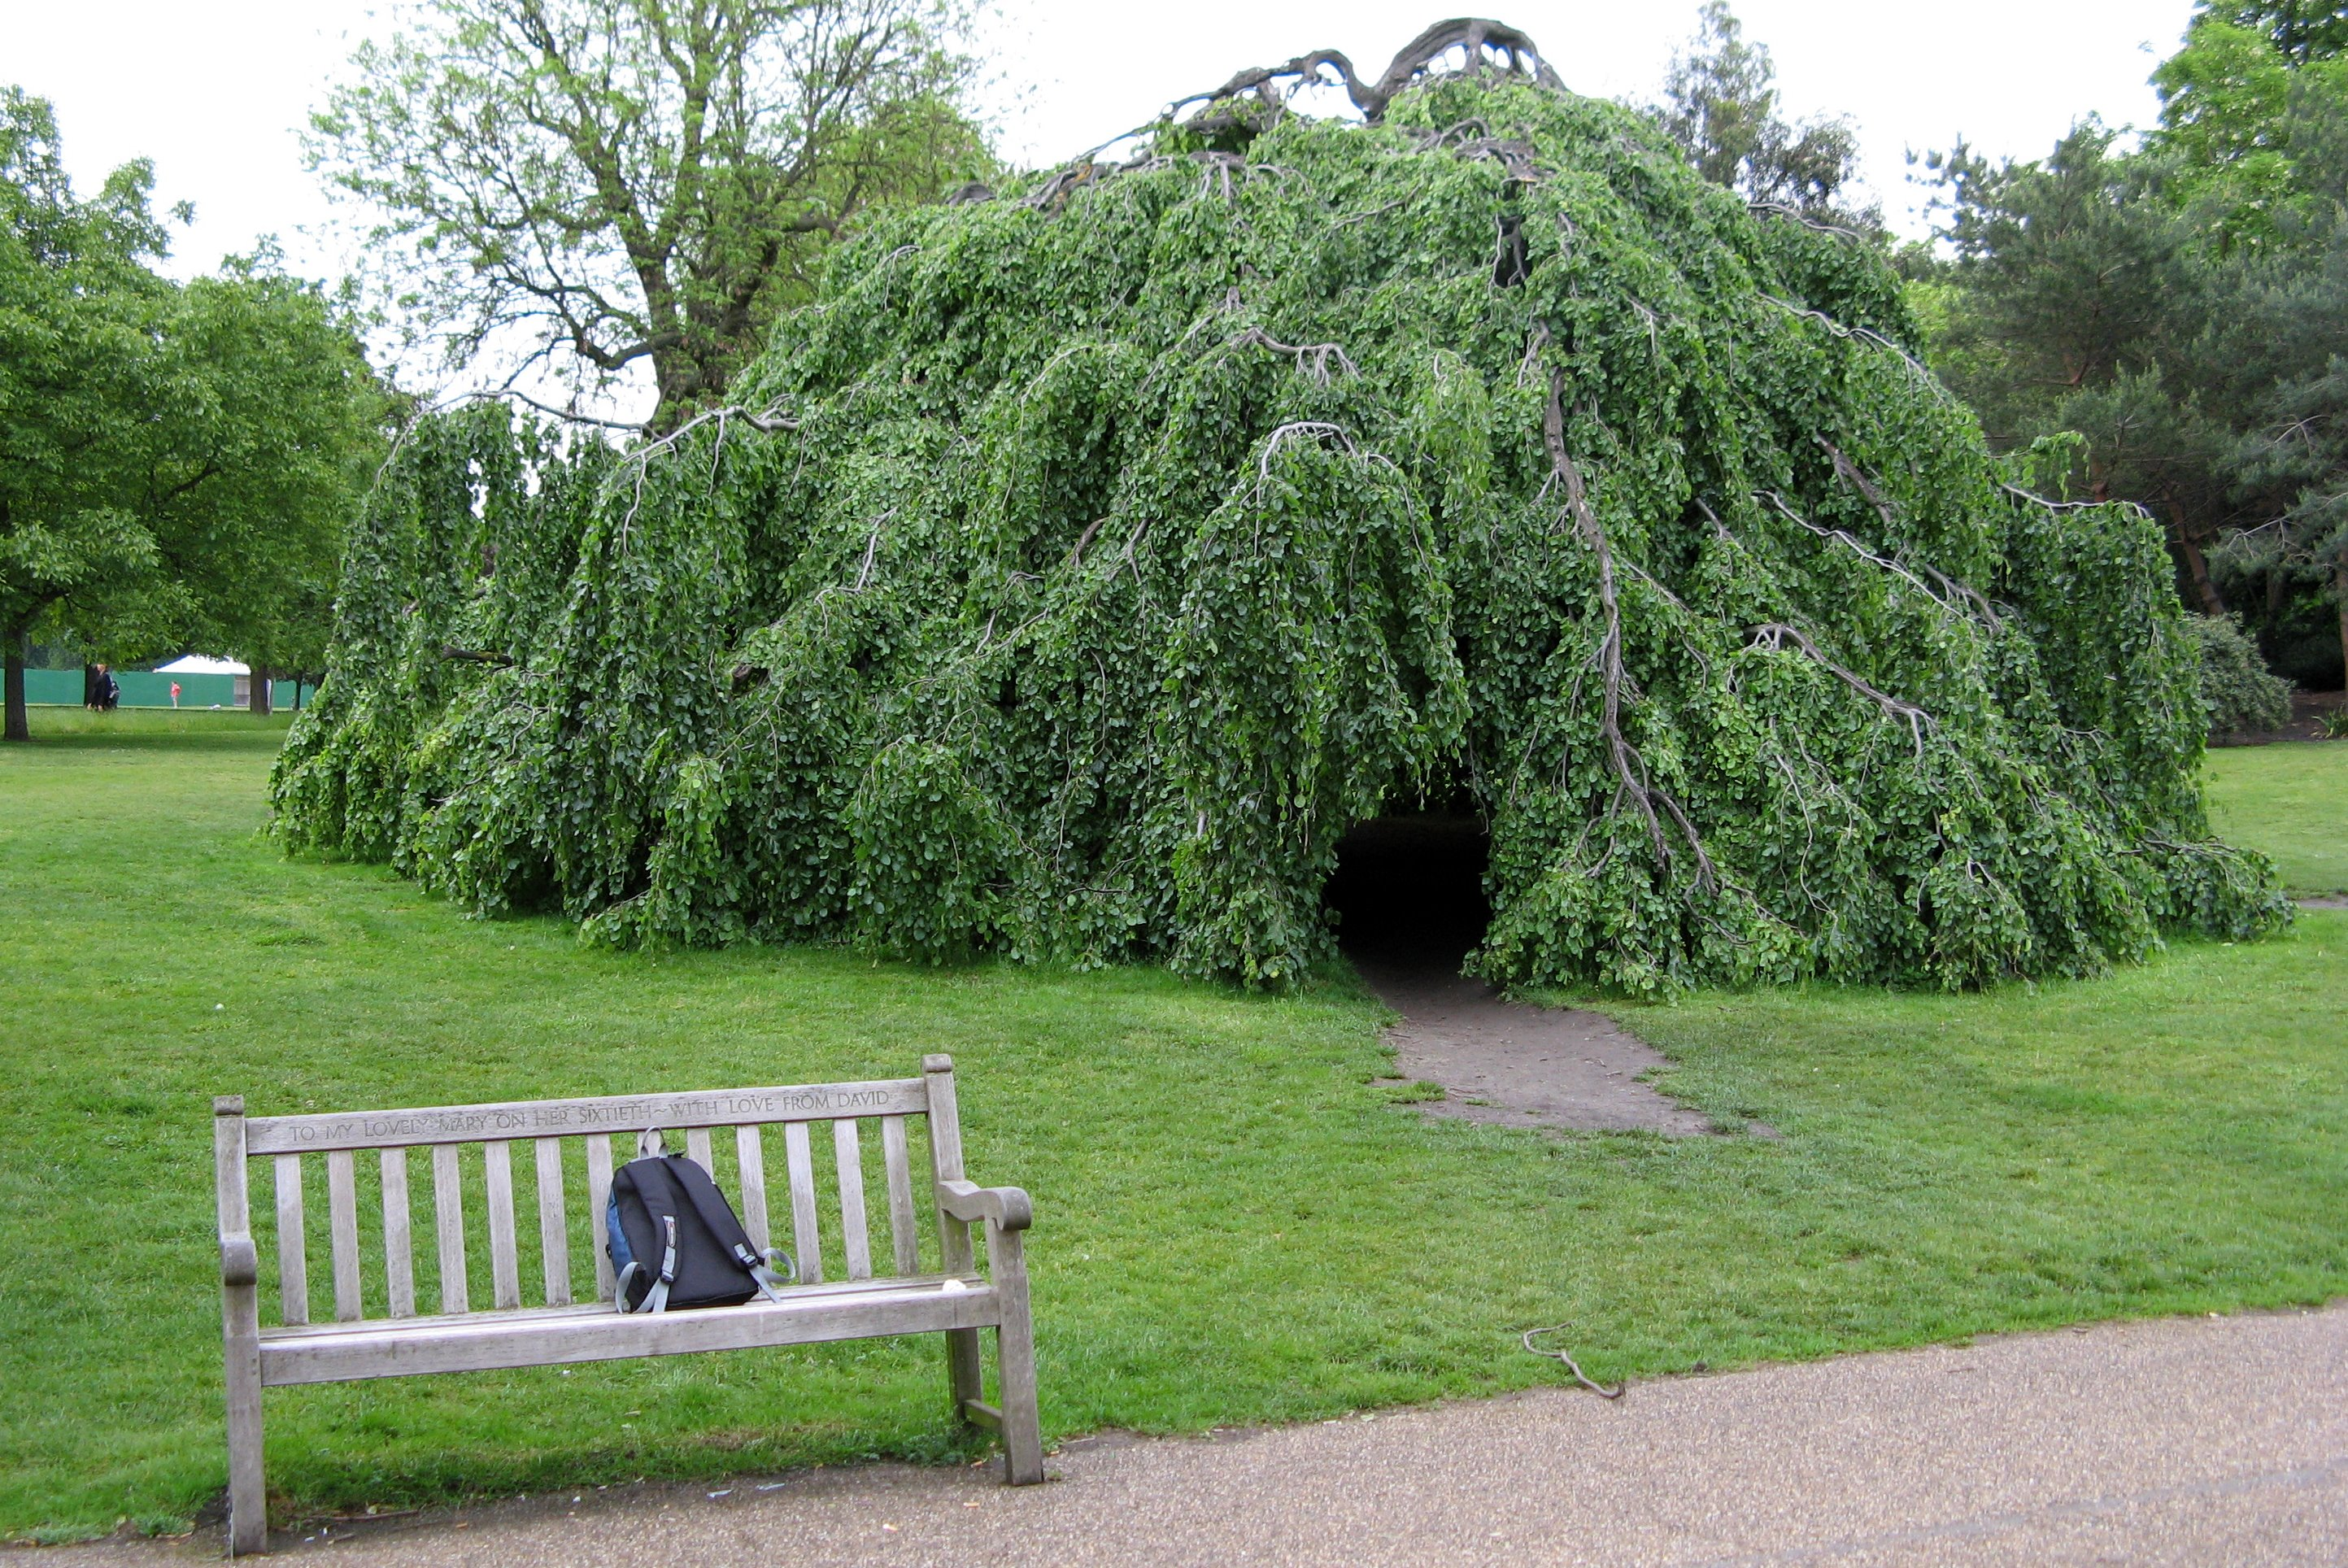 File:Hyde park tree.jpg  Wikipedia, the free encyclopedia